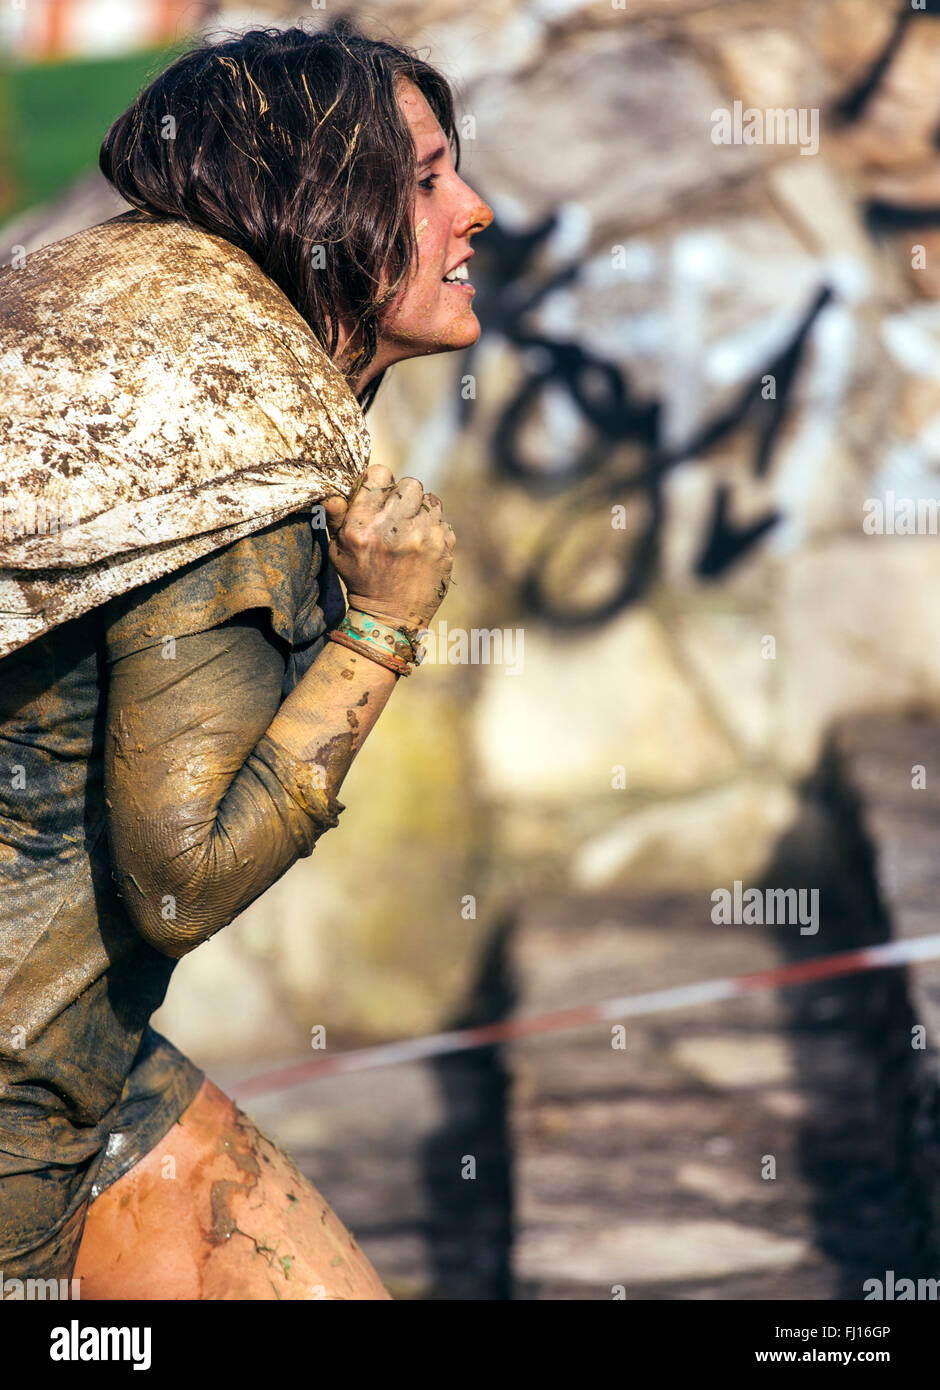 Participant in extreme obstacle race carrying sandbags - Stock Image